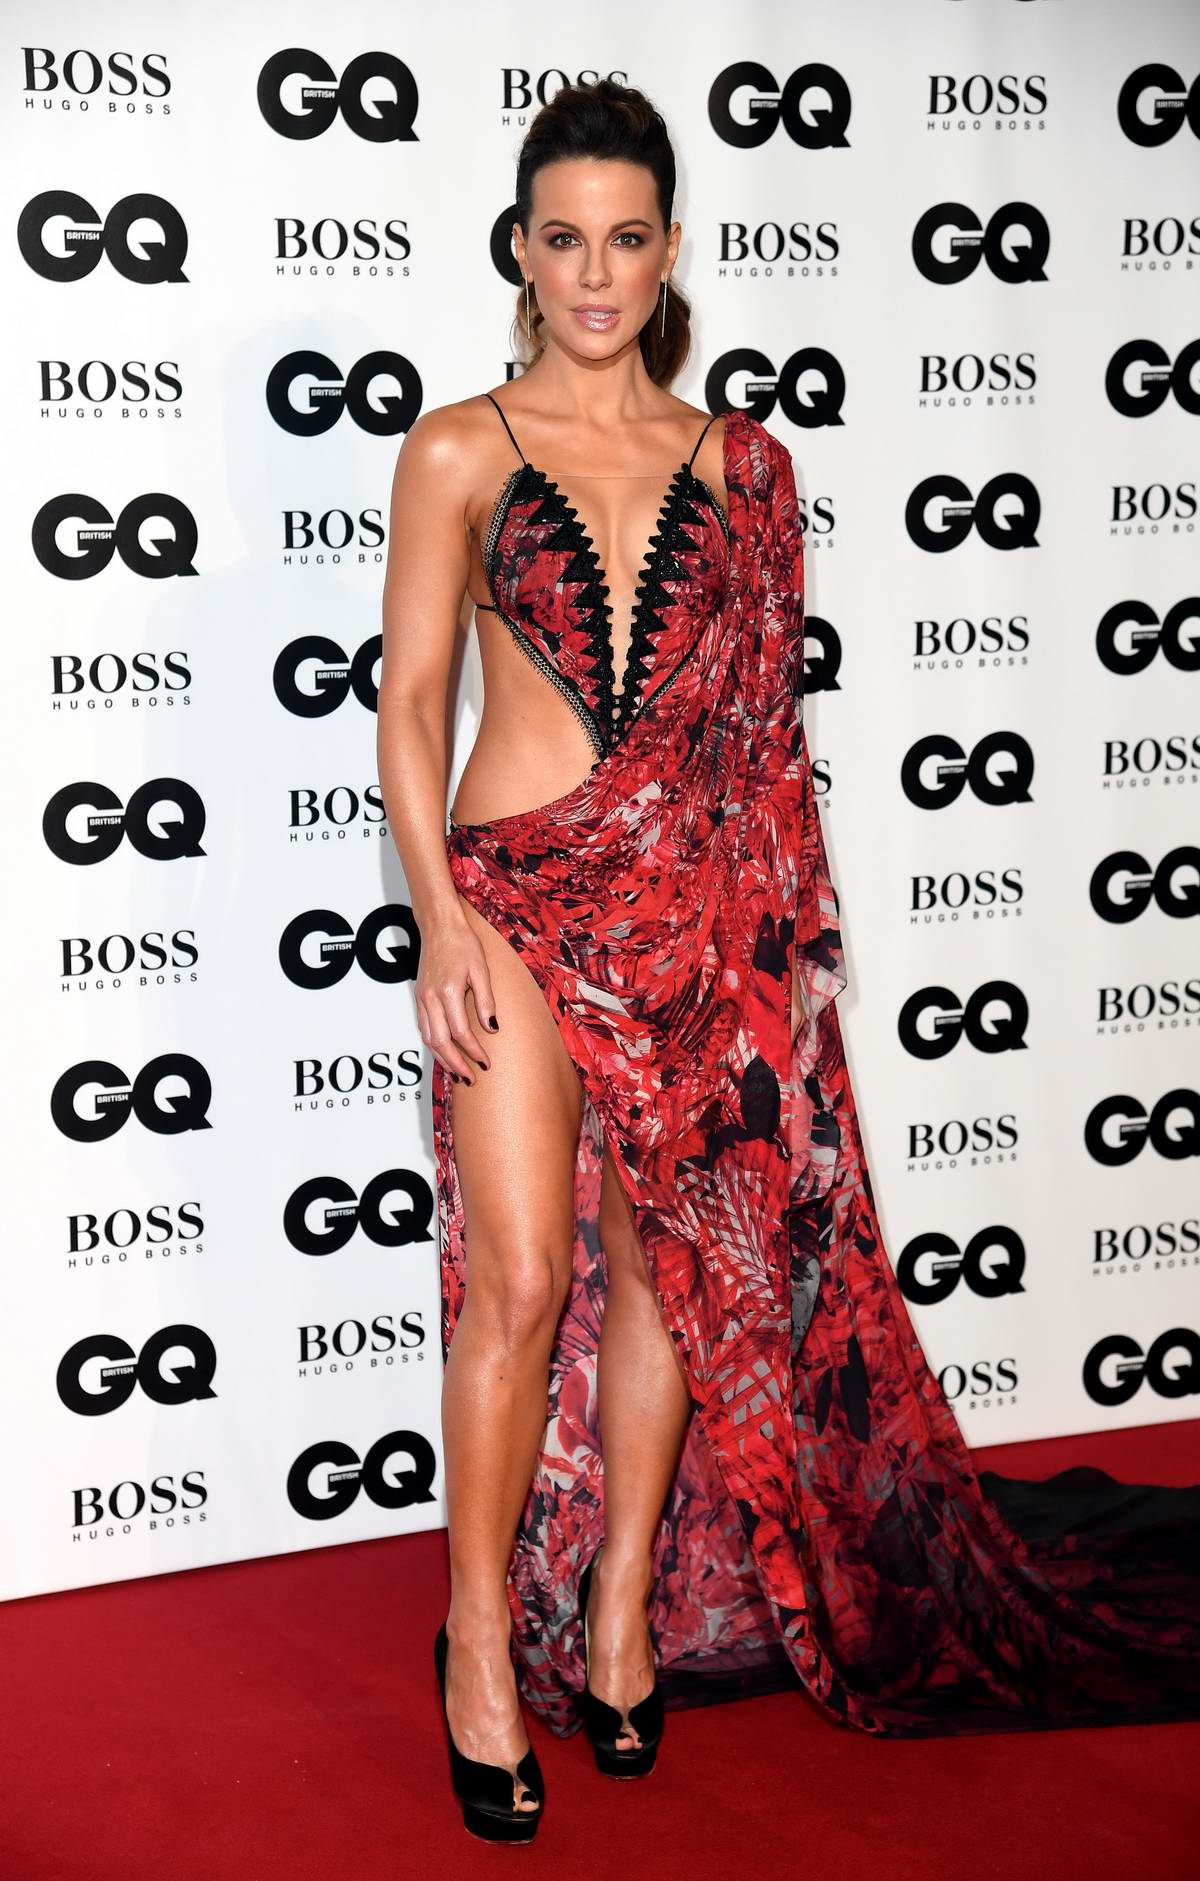 Kate Beckinsale attending the GQ Men of the Year Awards 2018 at the Tate Modern in London, UK